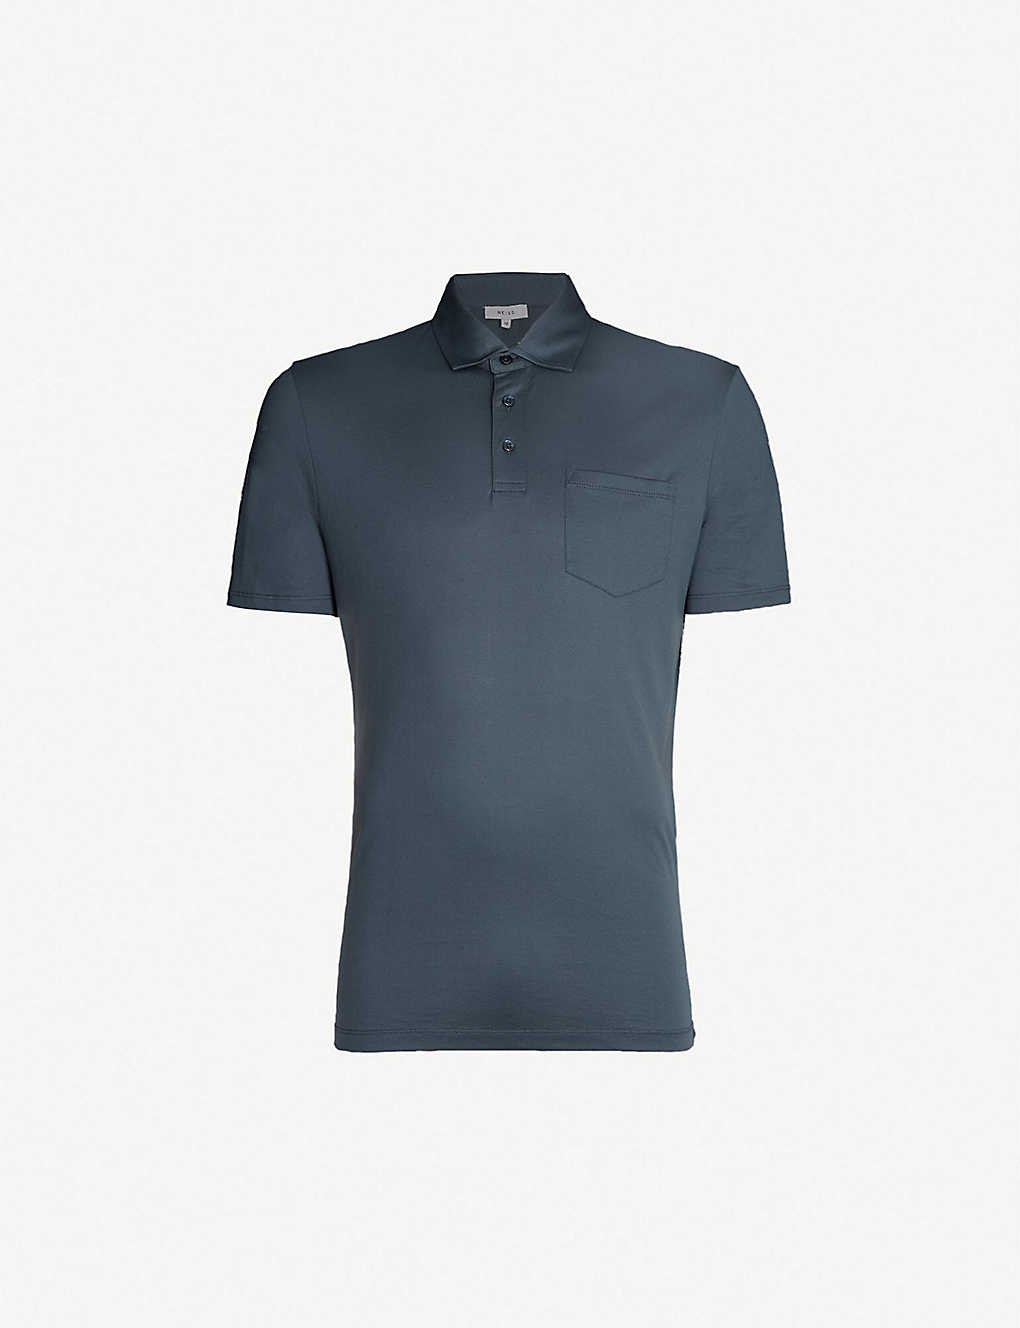 92a2da7b REISS - Elliot Egyptian cotton polo shirt | Selfridges.com